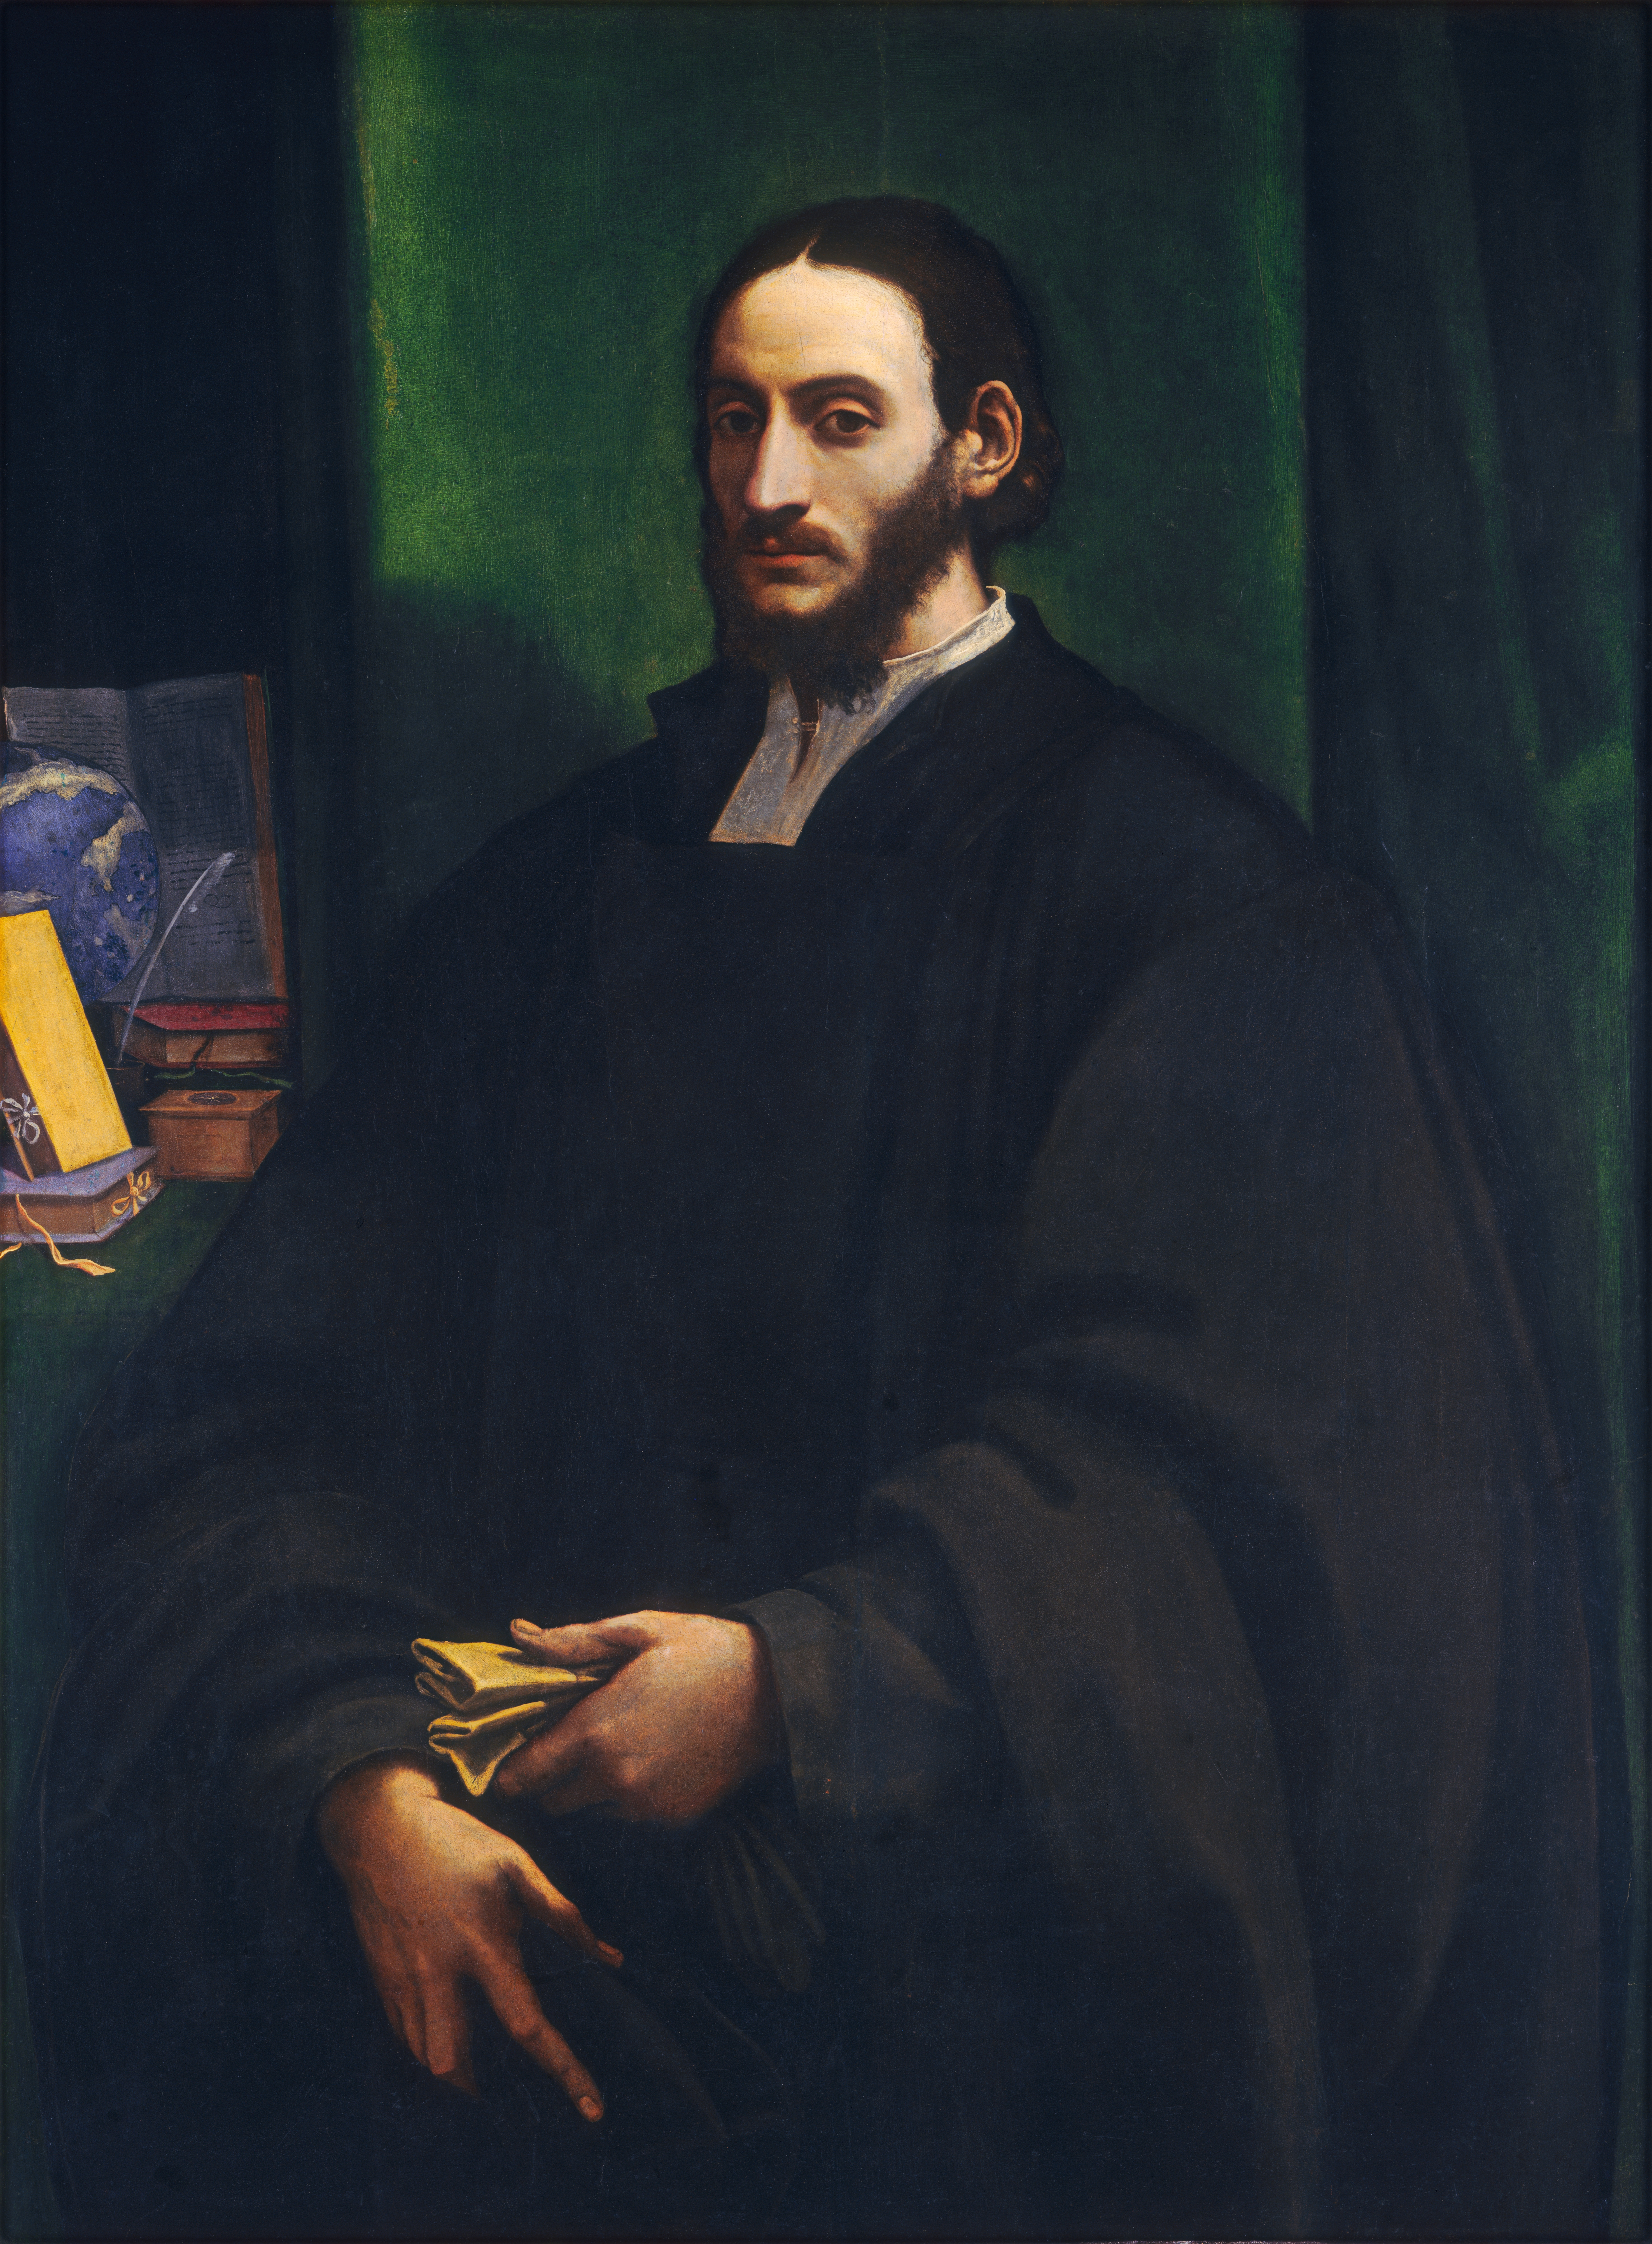 Sebastiano del Piombo, Portrait of a Humanist, circa 1520, oil on panel transferred to hardboard, National Gallery of Art, Washington, D.C.